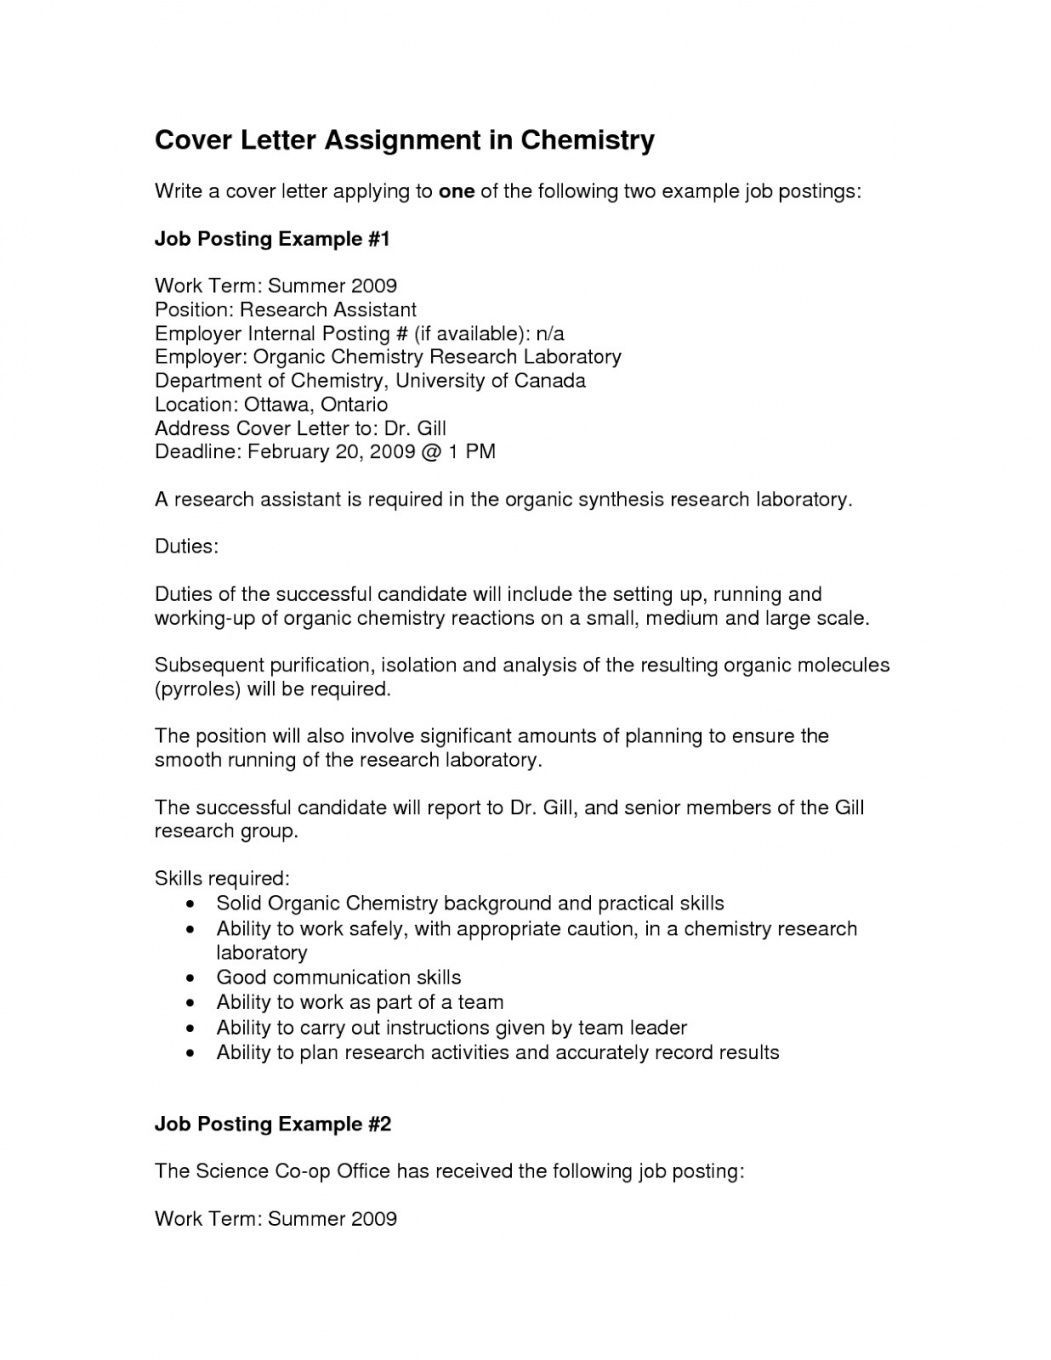 Explore our image of internal promotion cover letter